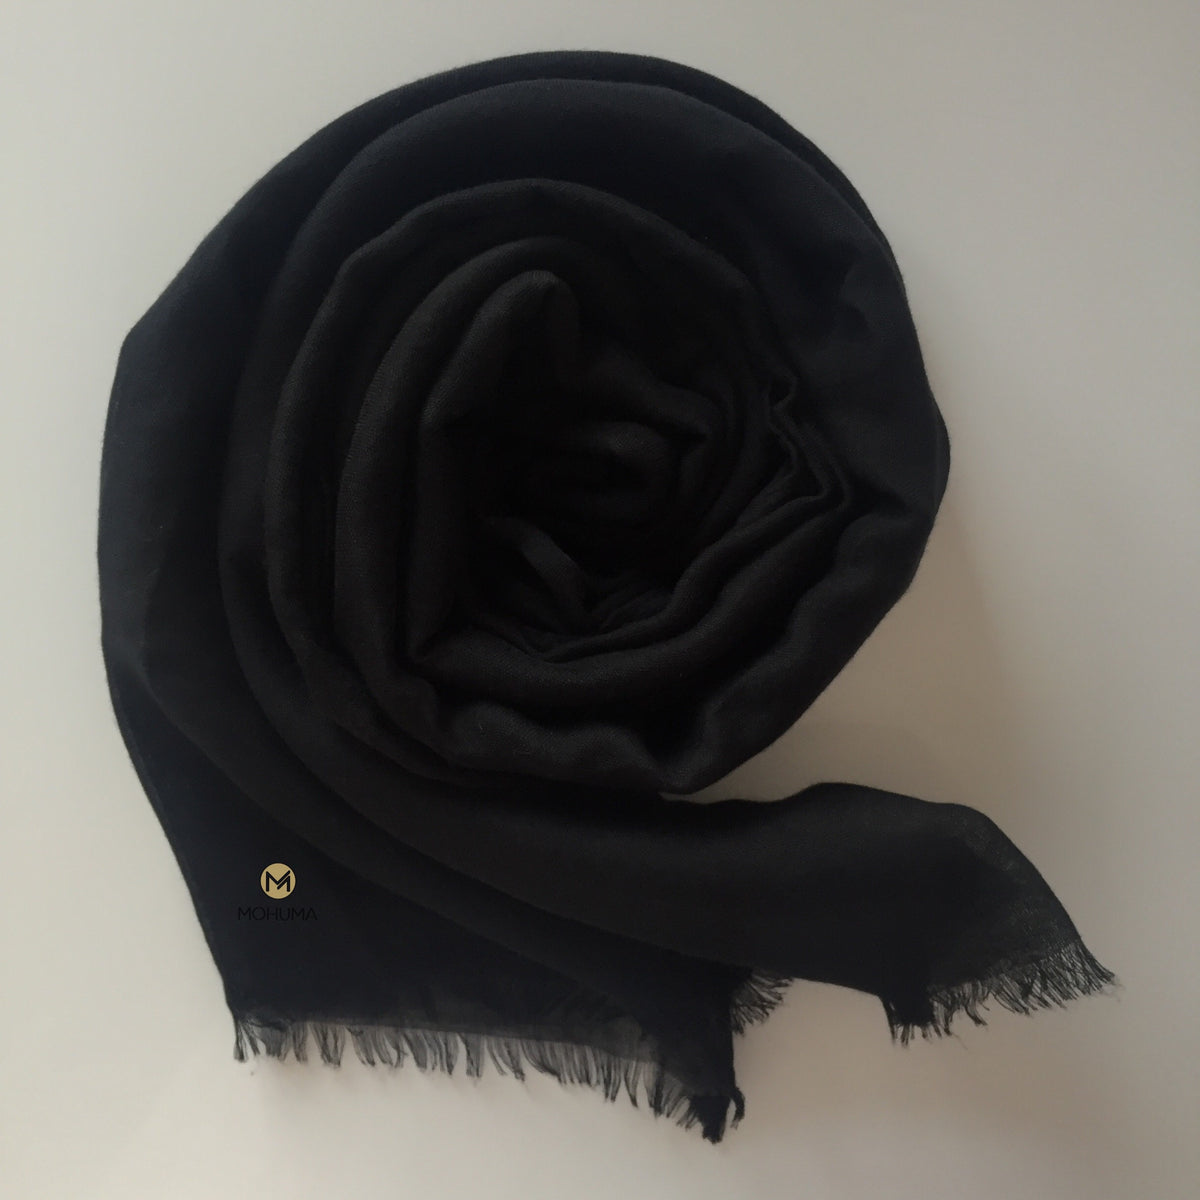 Premium Breathable Cotton Blend Hijab | Black - Mohuma Modesty House